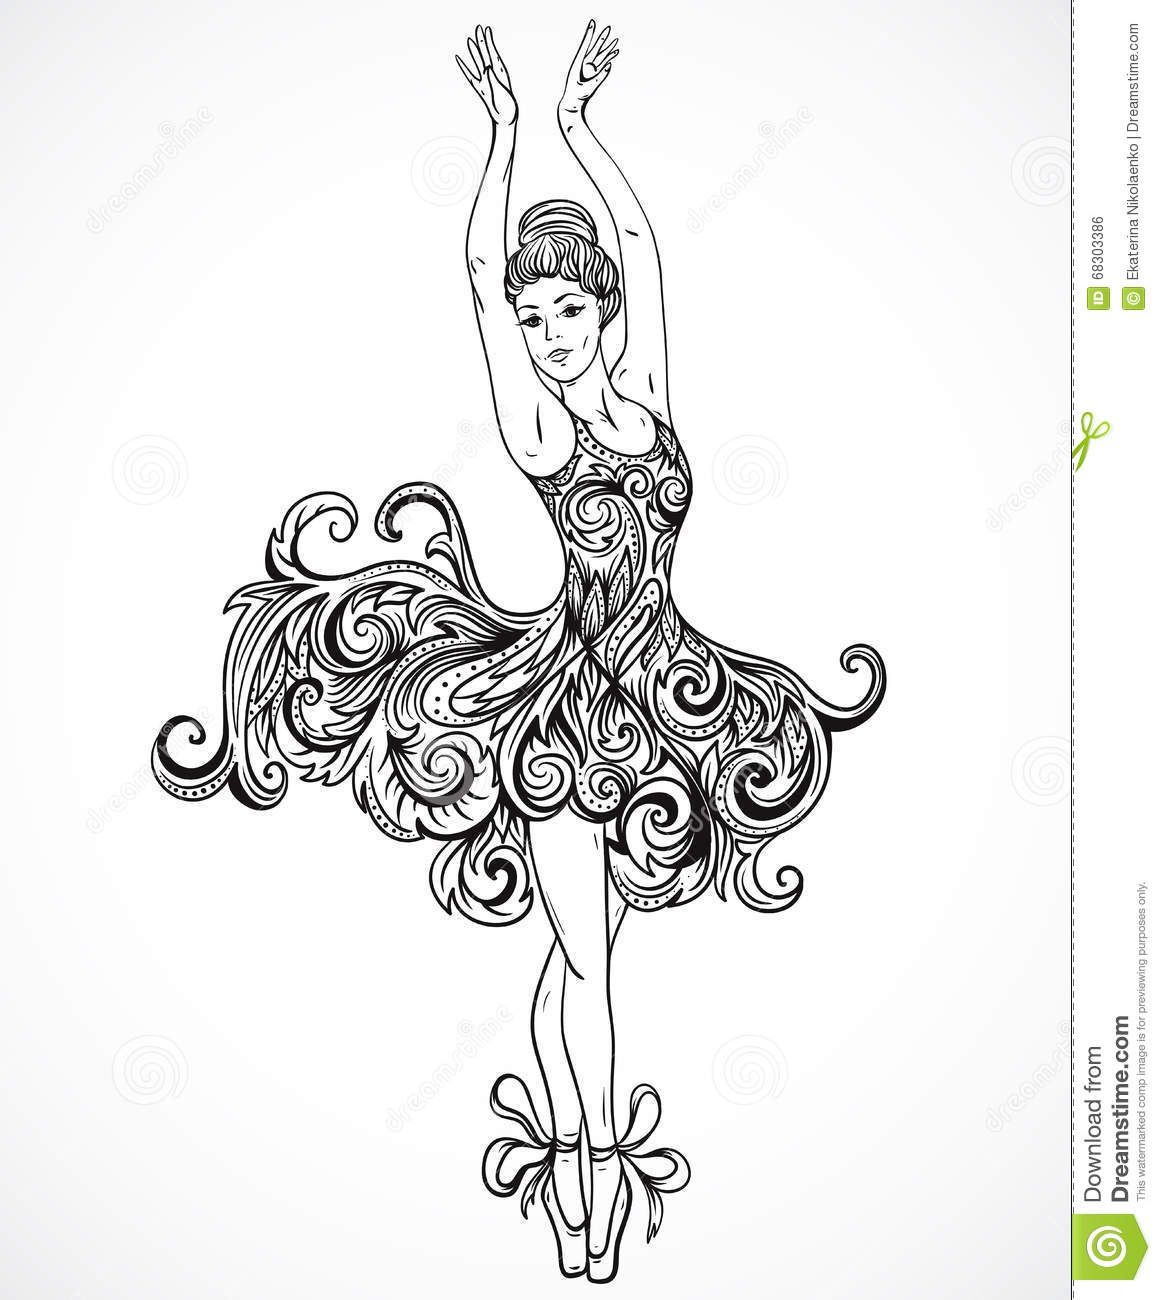 Ballerina with floral ornament dress. Vintage black and white hand drawn vector